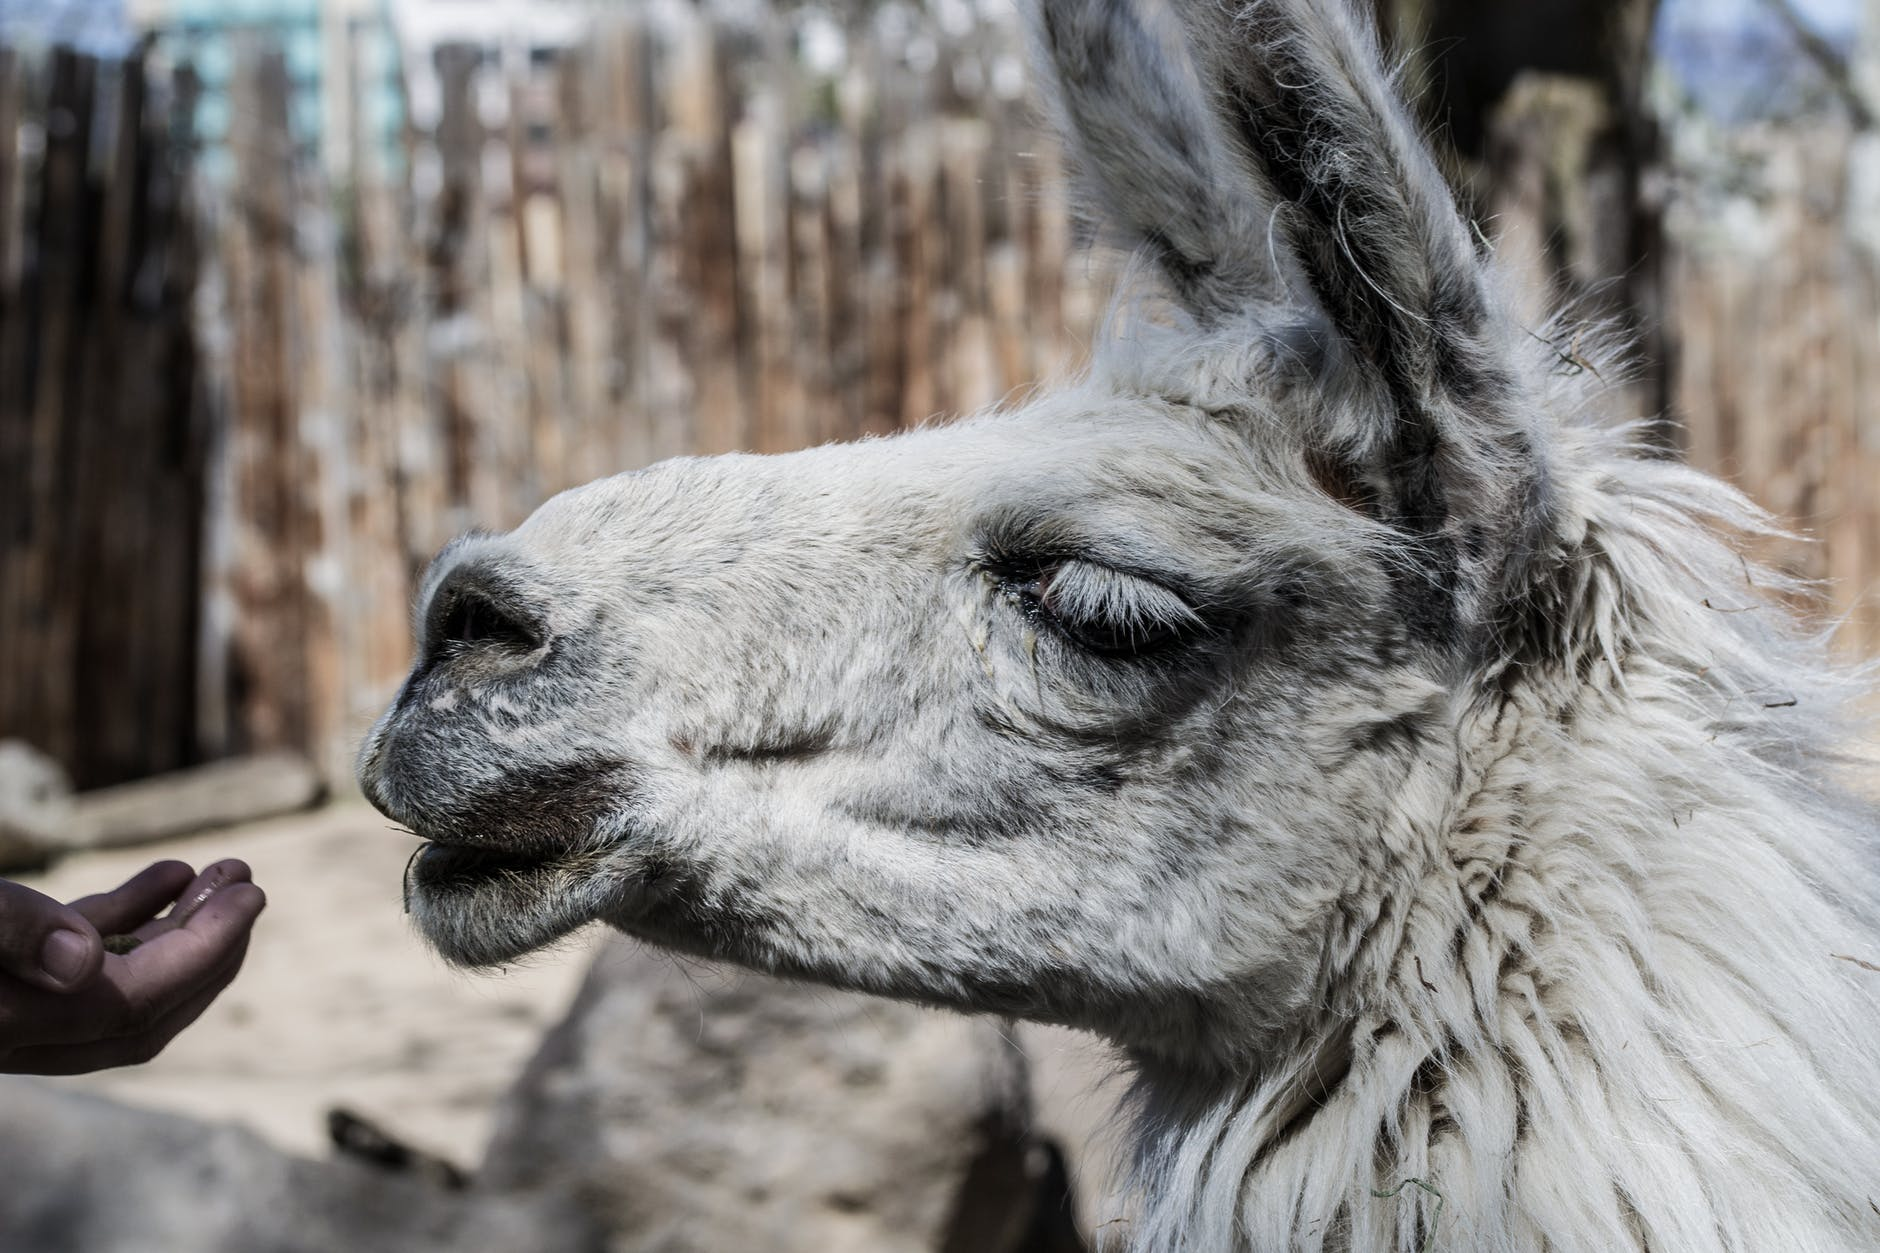 This is a purely decorative image of a very handsome llama